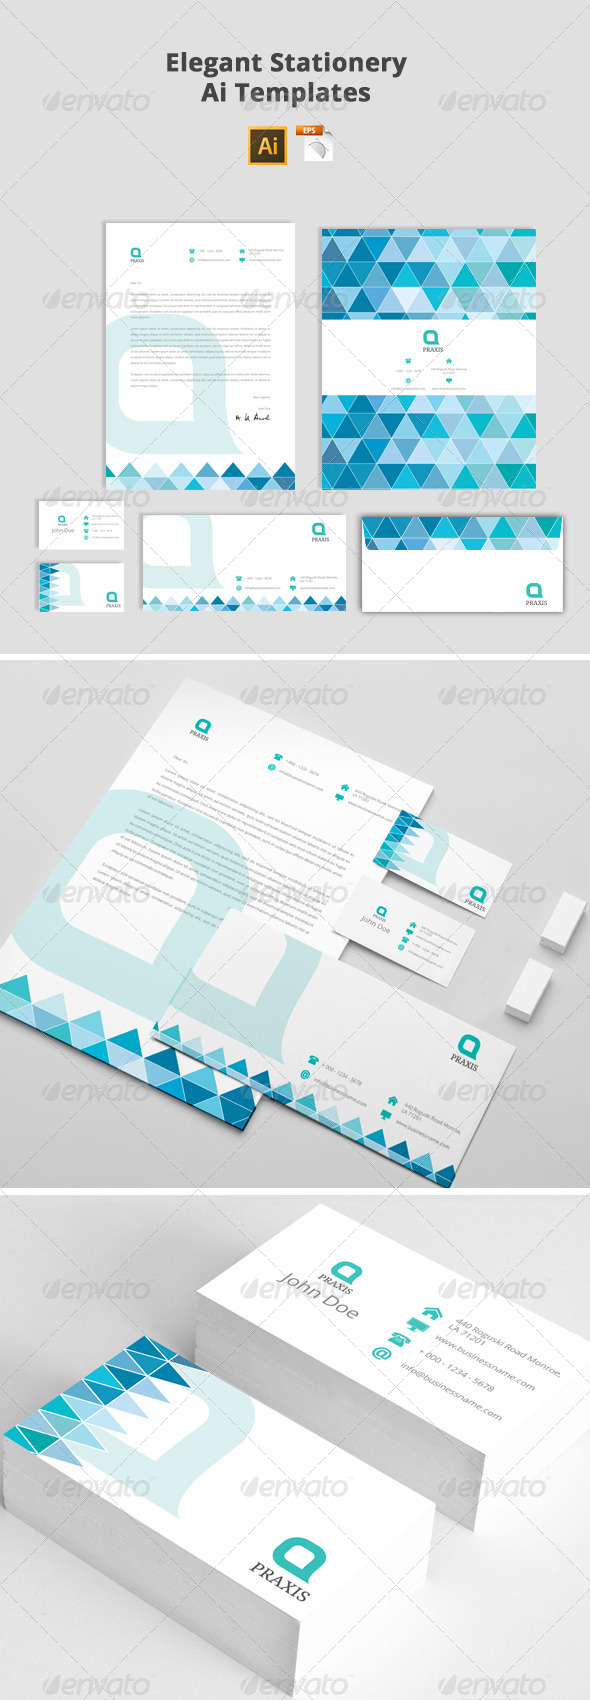 Elegant Stationery Ai Templates